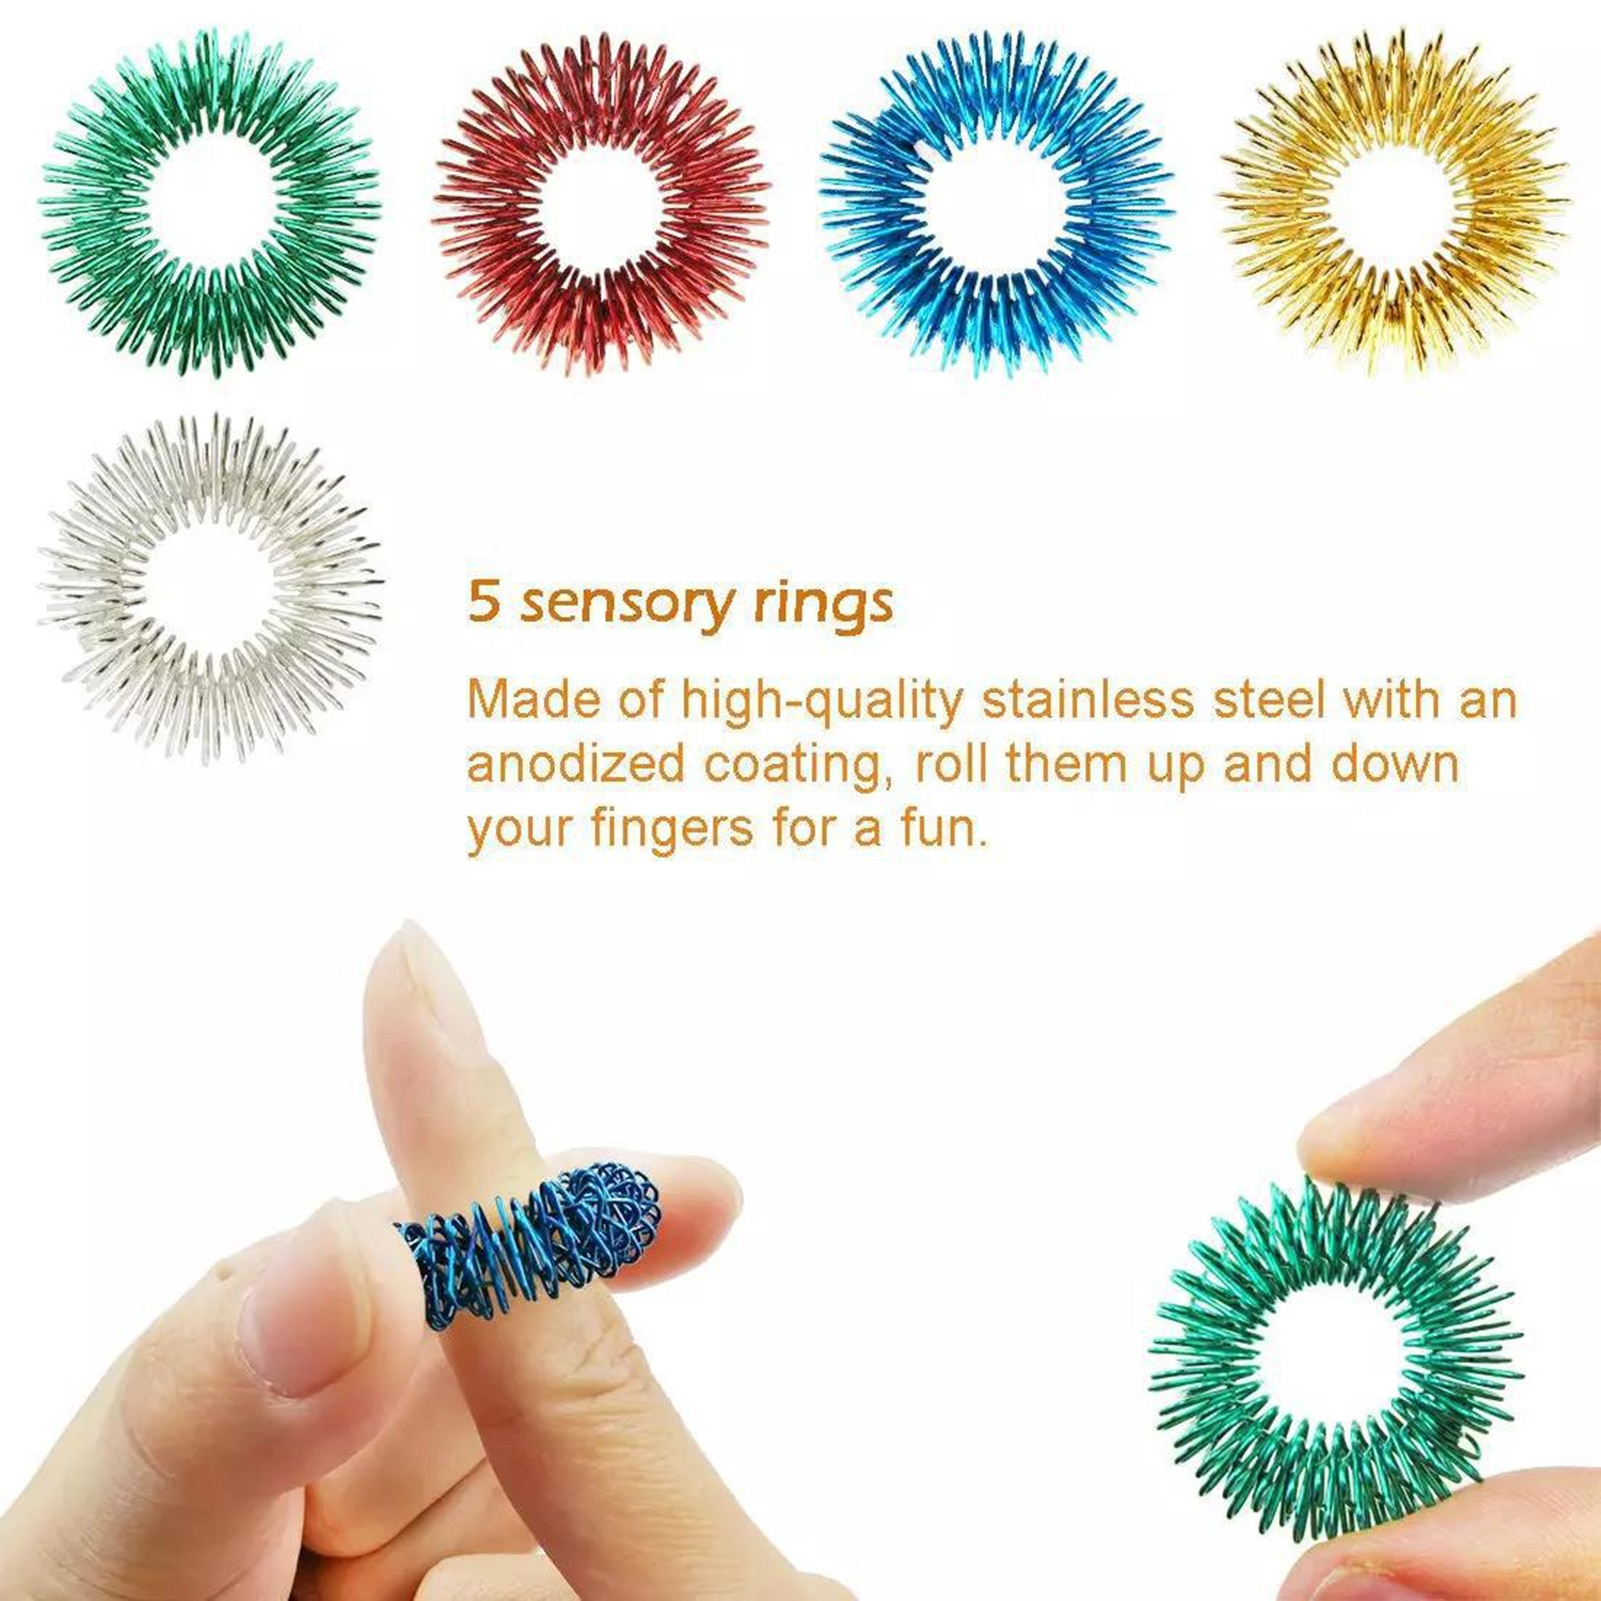 21 Pack Fidget Sensory Toy Set Stress Relief Toys For Kids Adults Fidget Sensory Antistress Toy Stress Relief Funny Toy In Stock enlarge